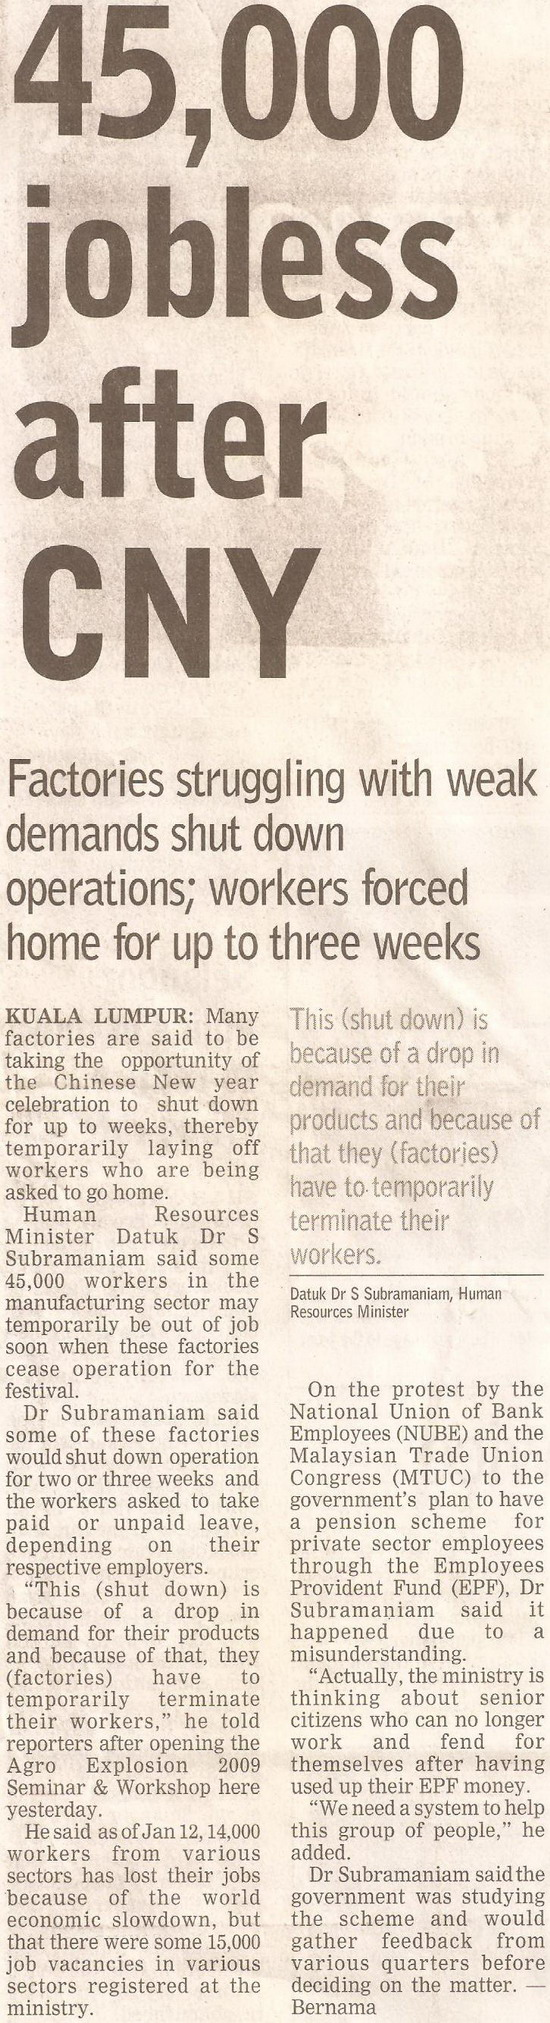 Borneo Post. 2009. 45,000 jobless after CNY. January 19, 2009 Edition.